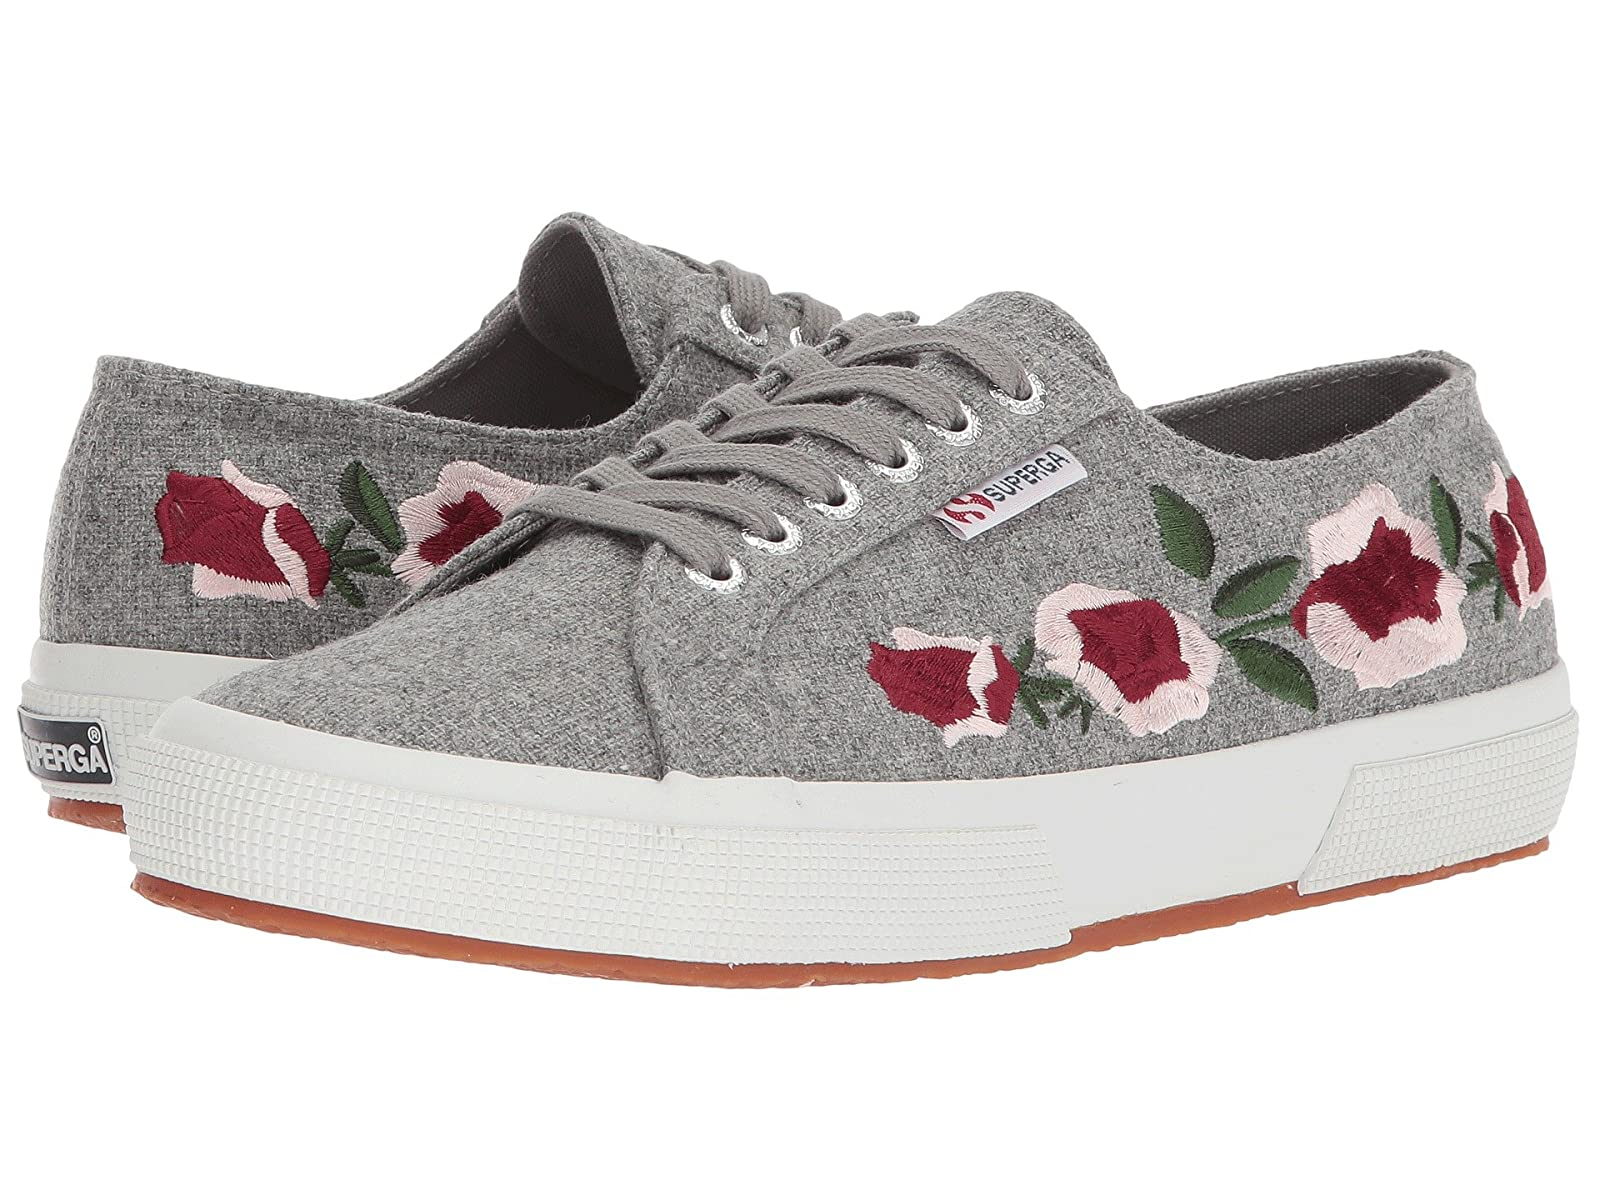 Superga 2750 EmbwoolwCheap and distinctive eye-catching shoes